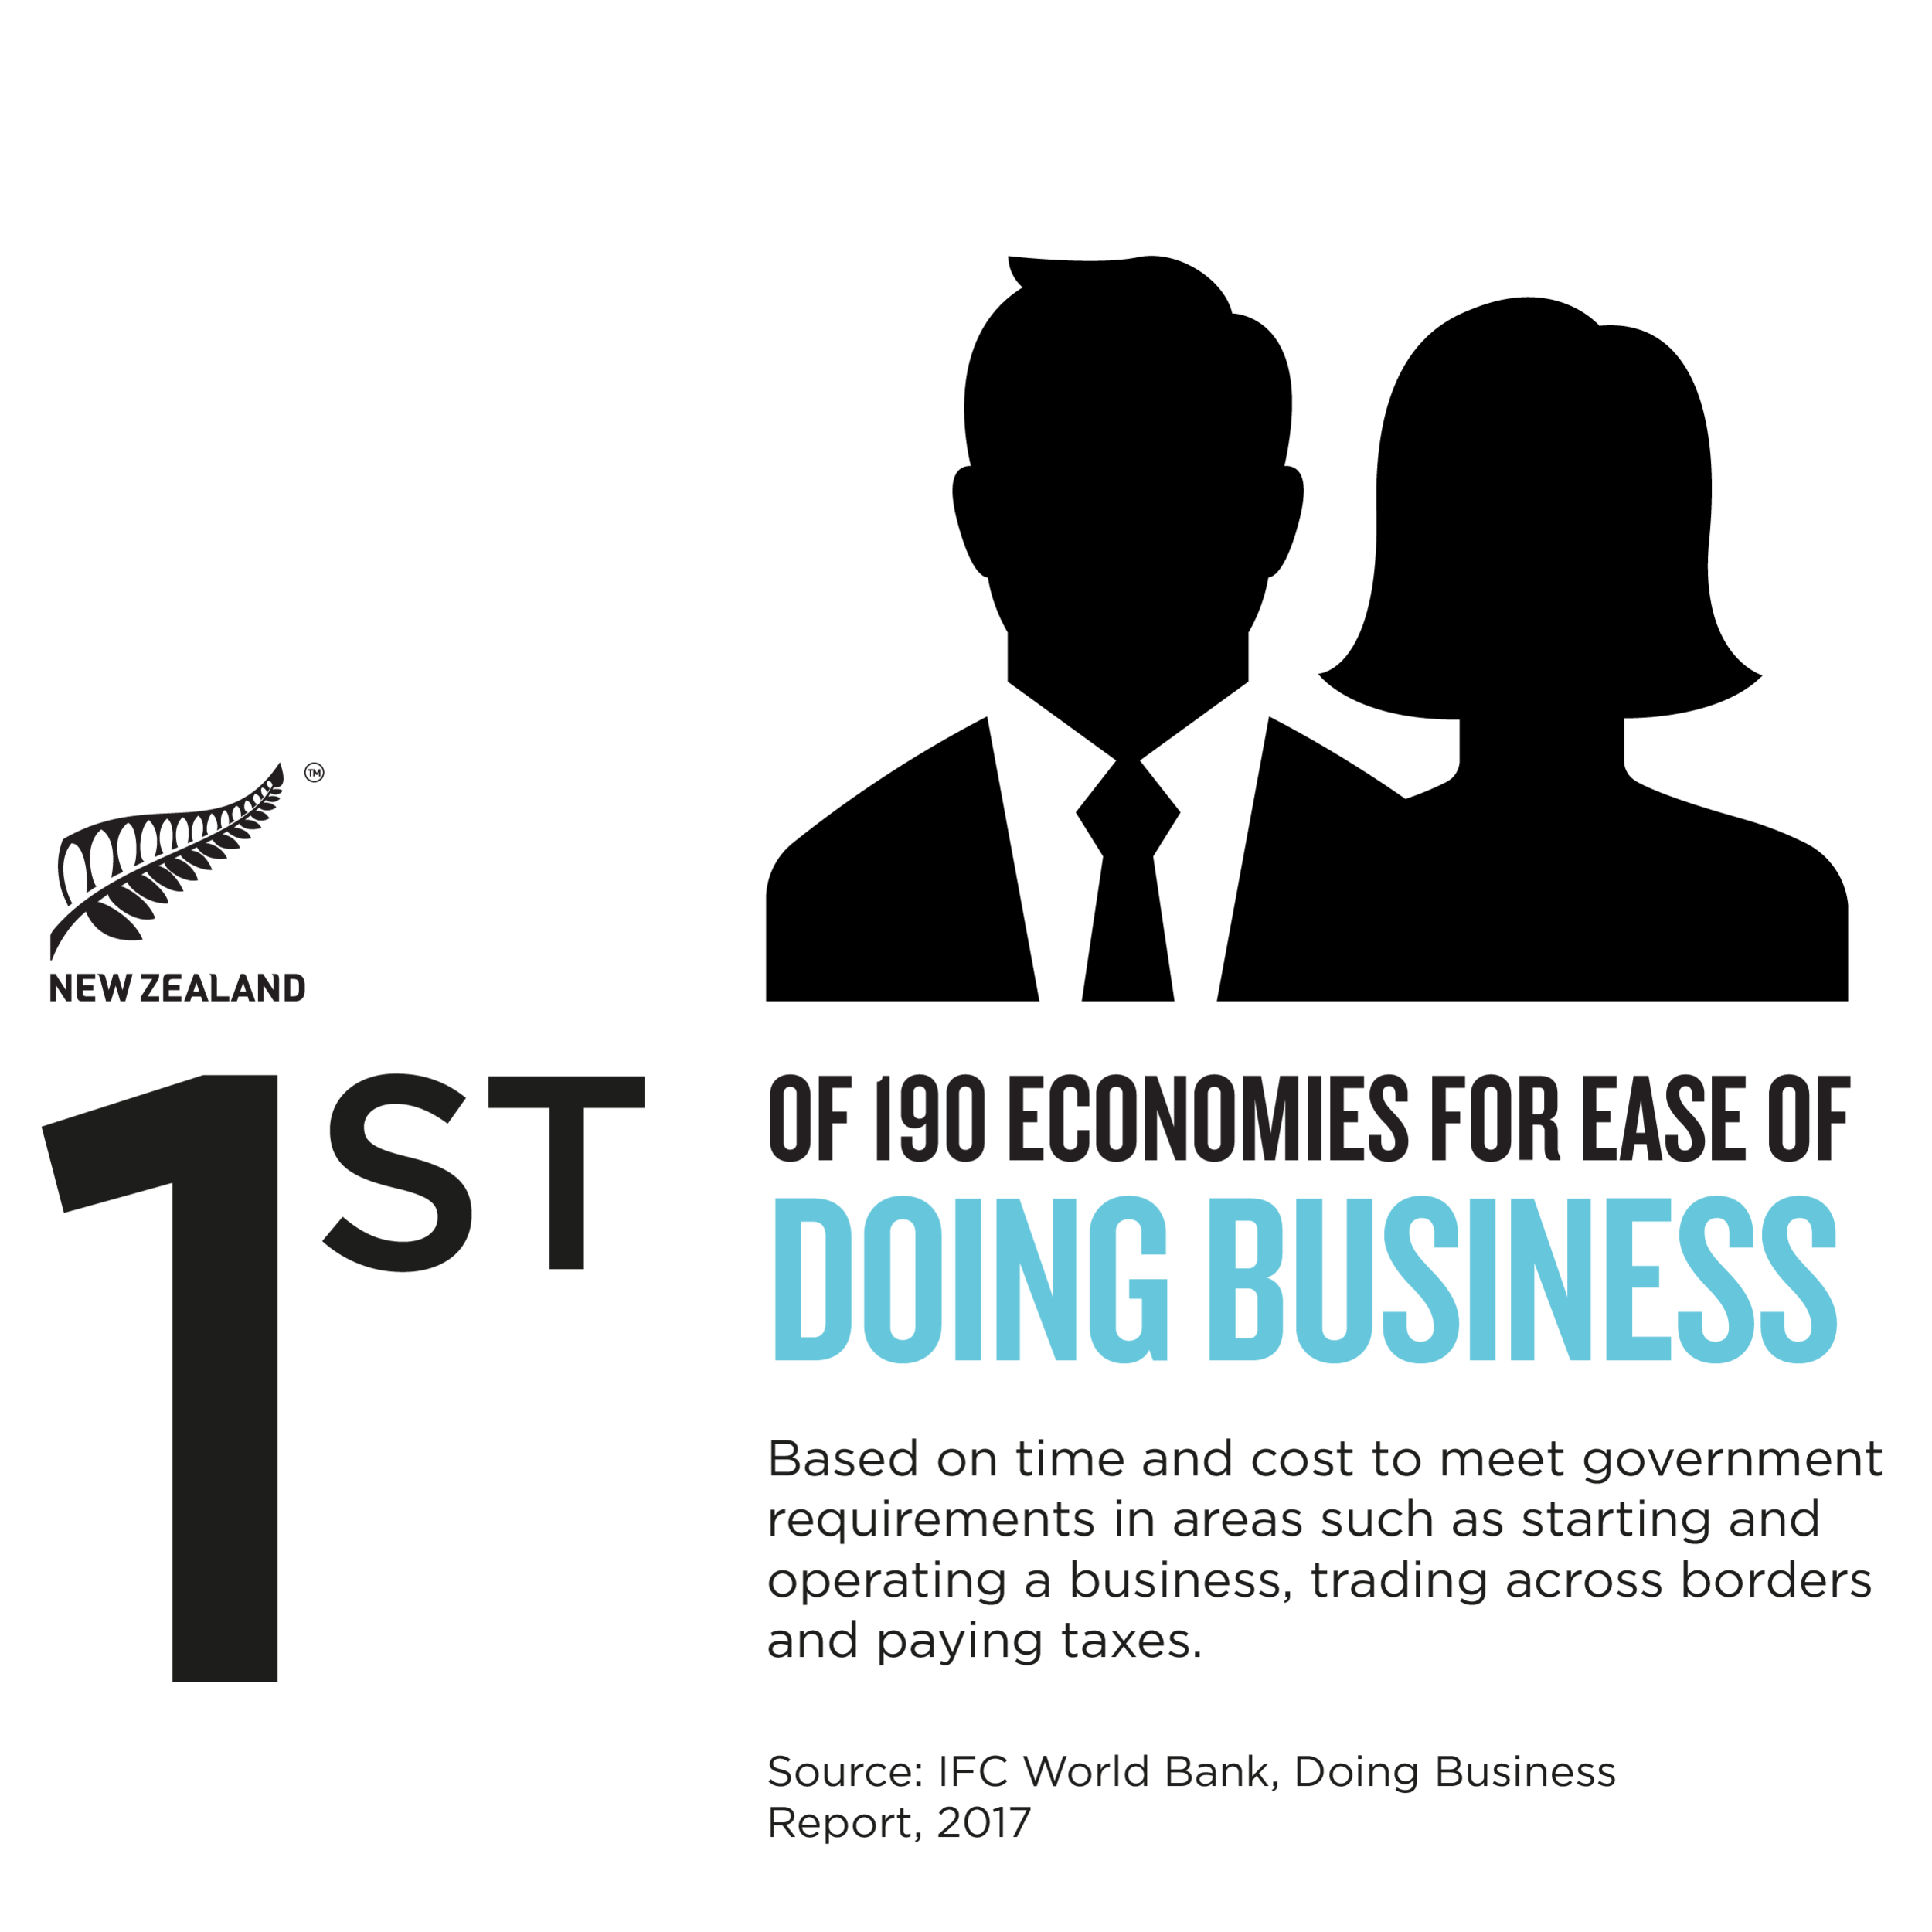 Best-country-business-NZ